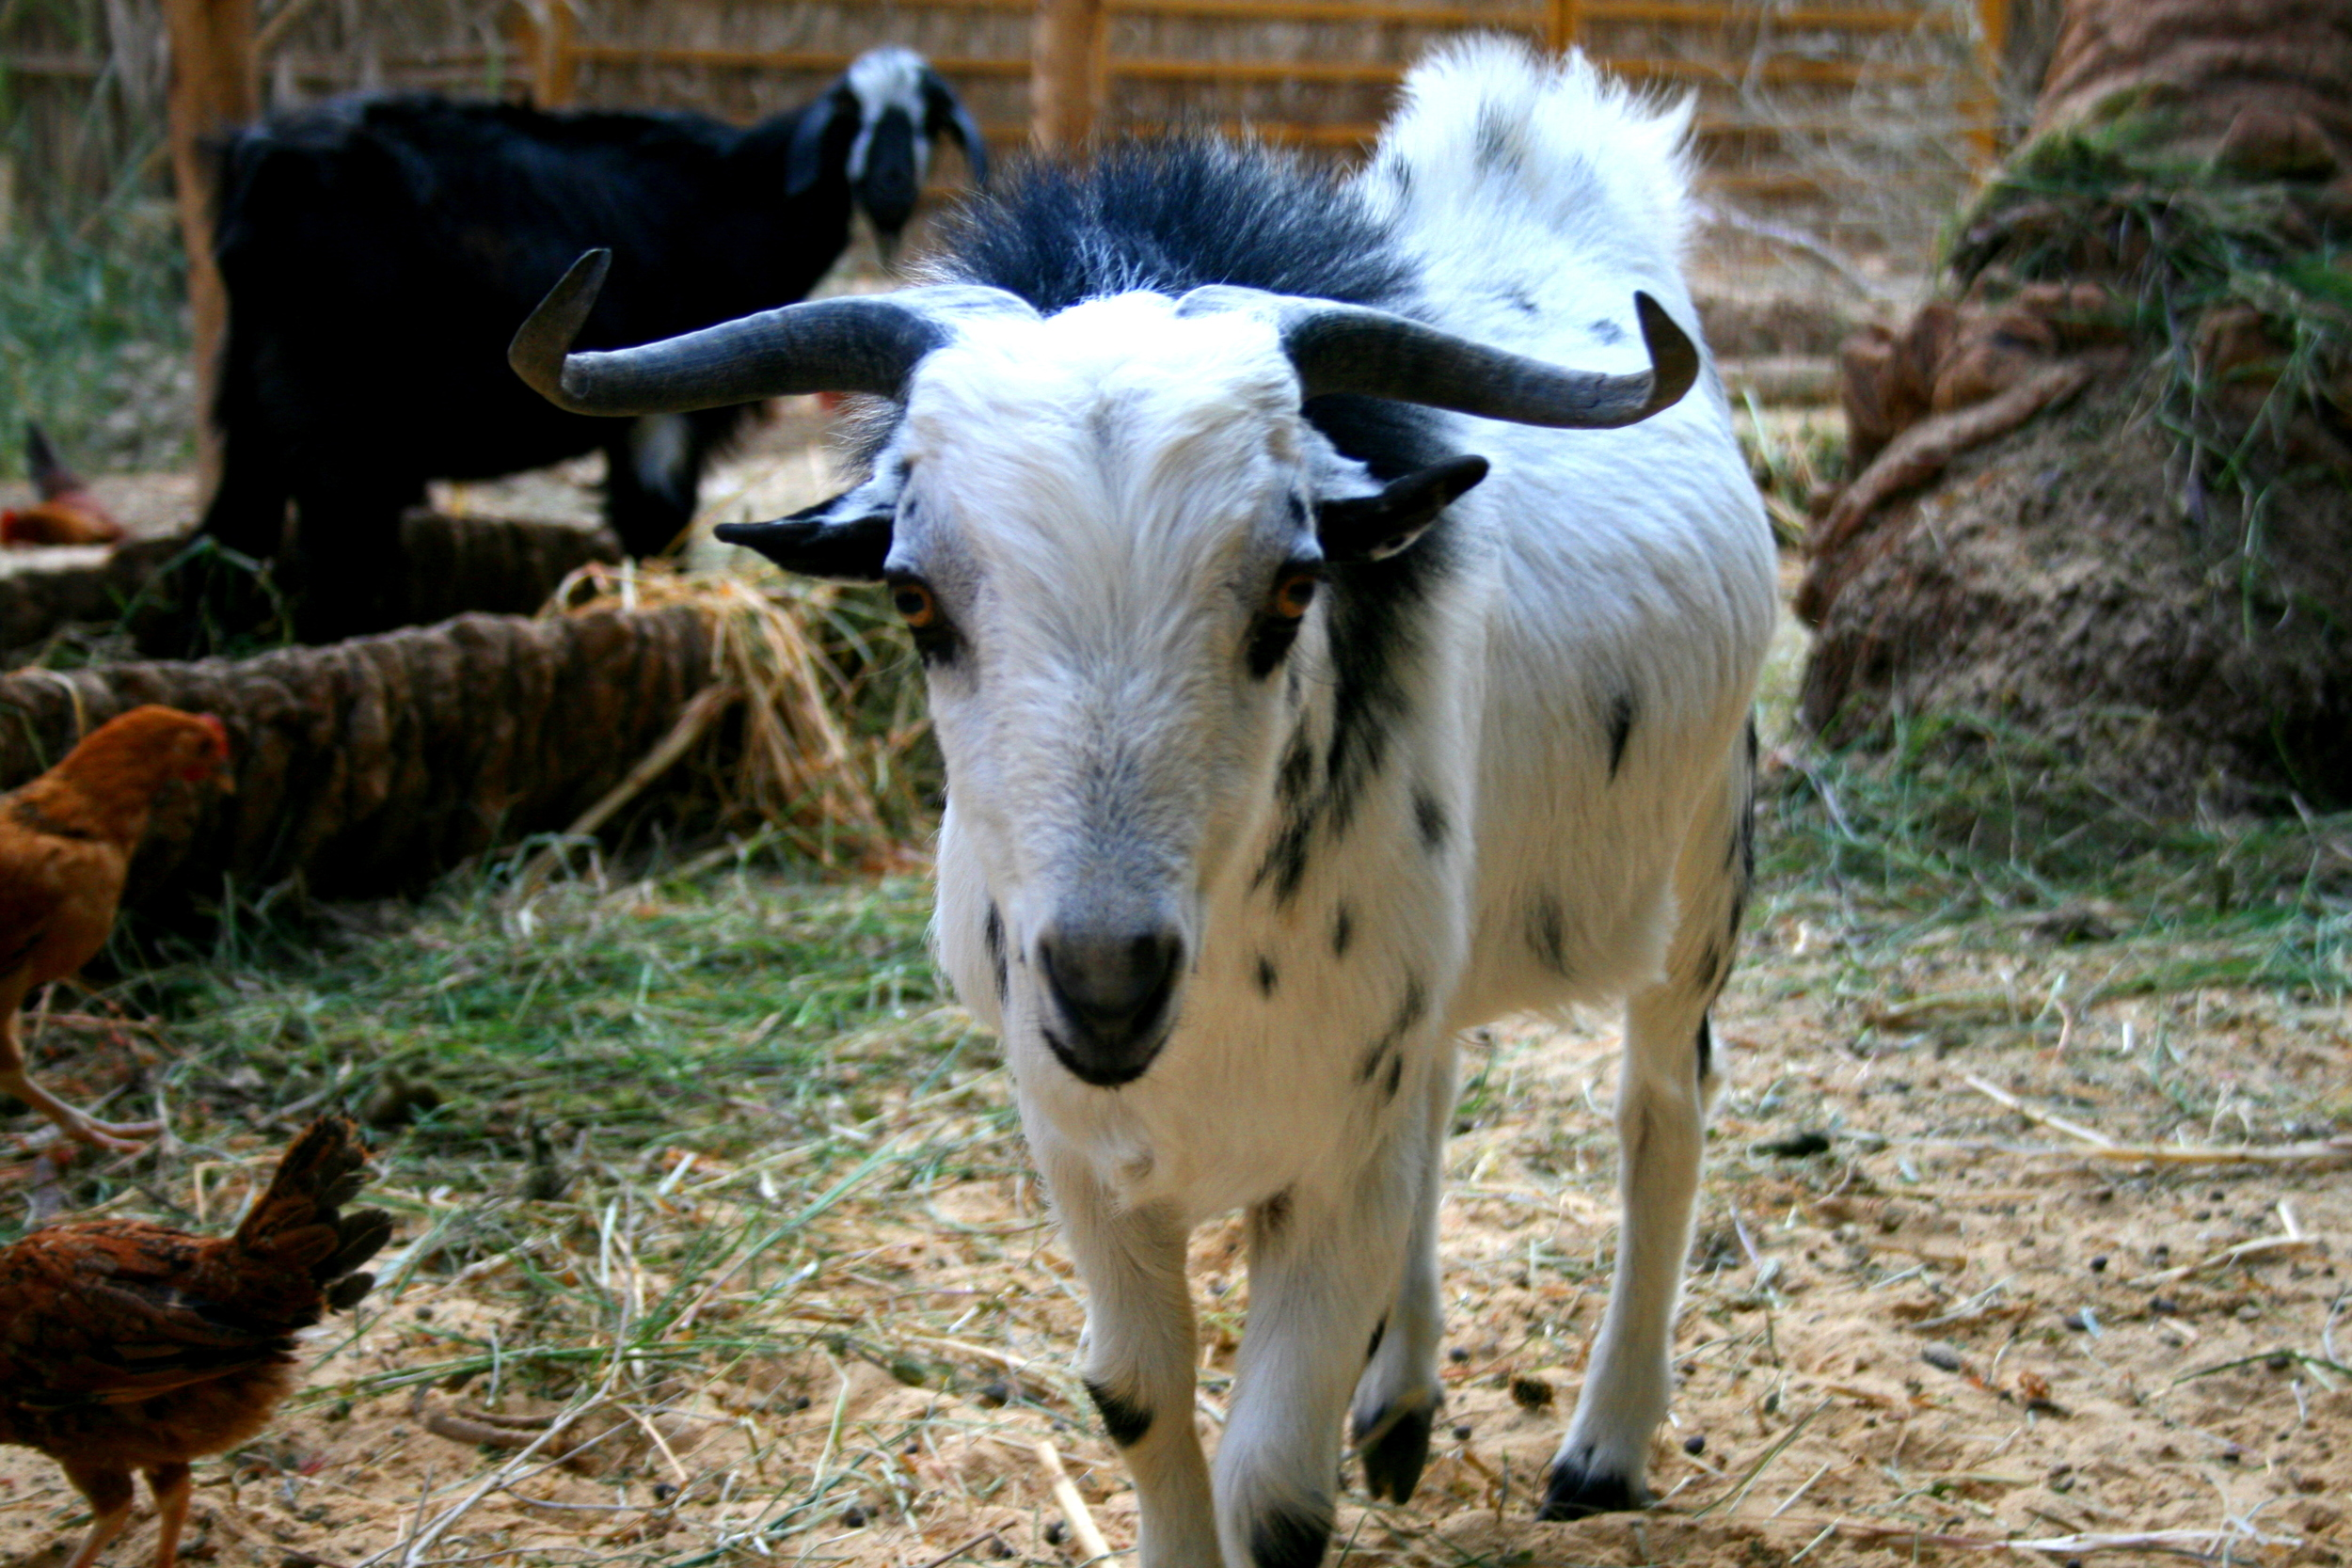 One of our big billy goats